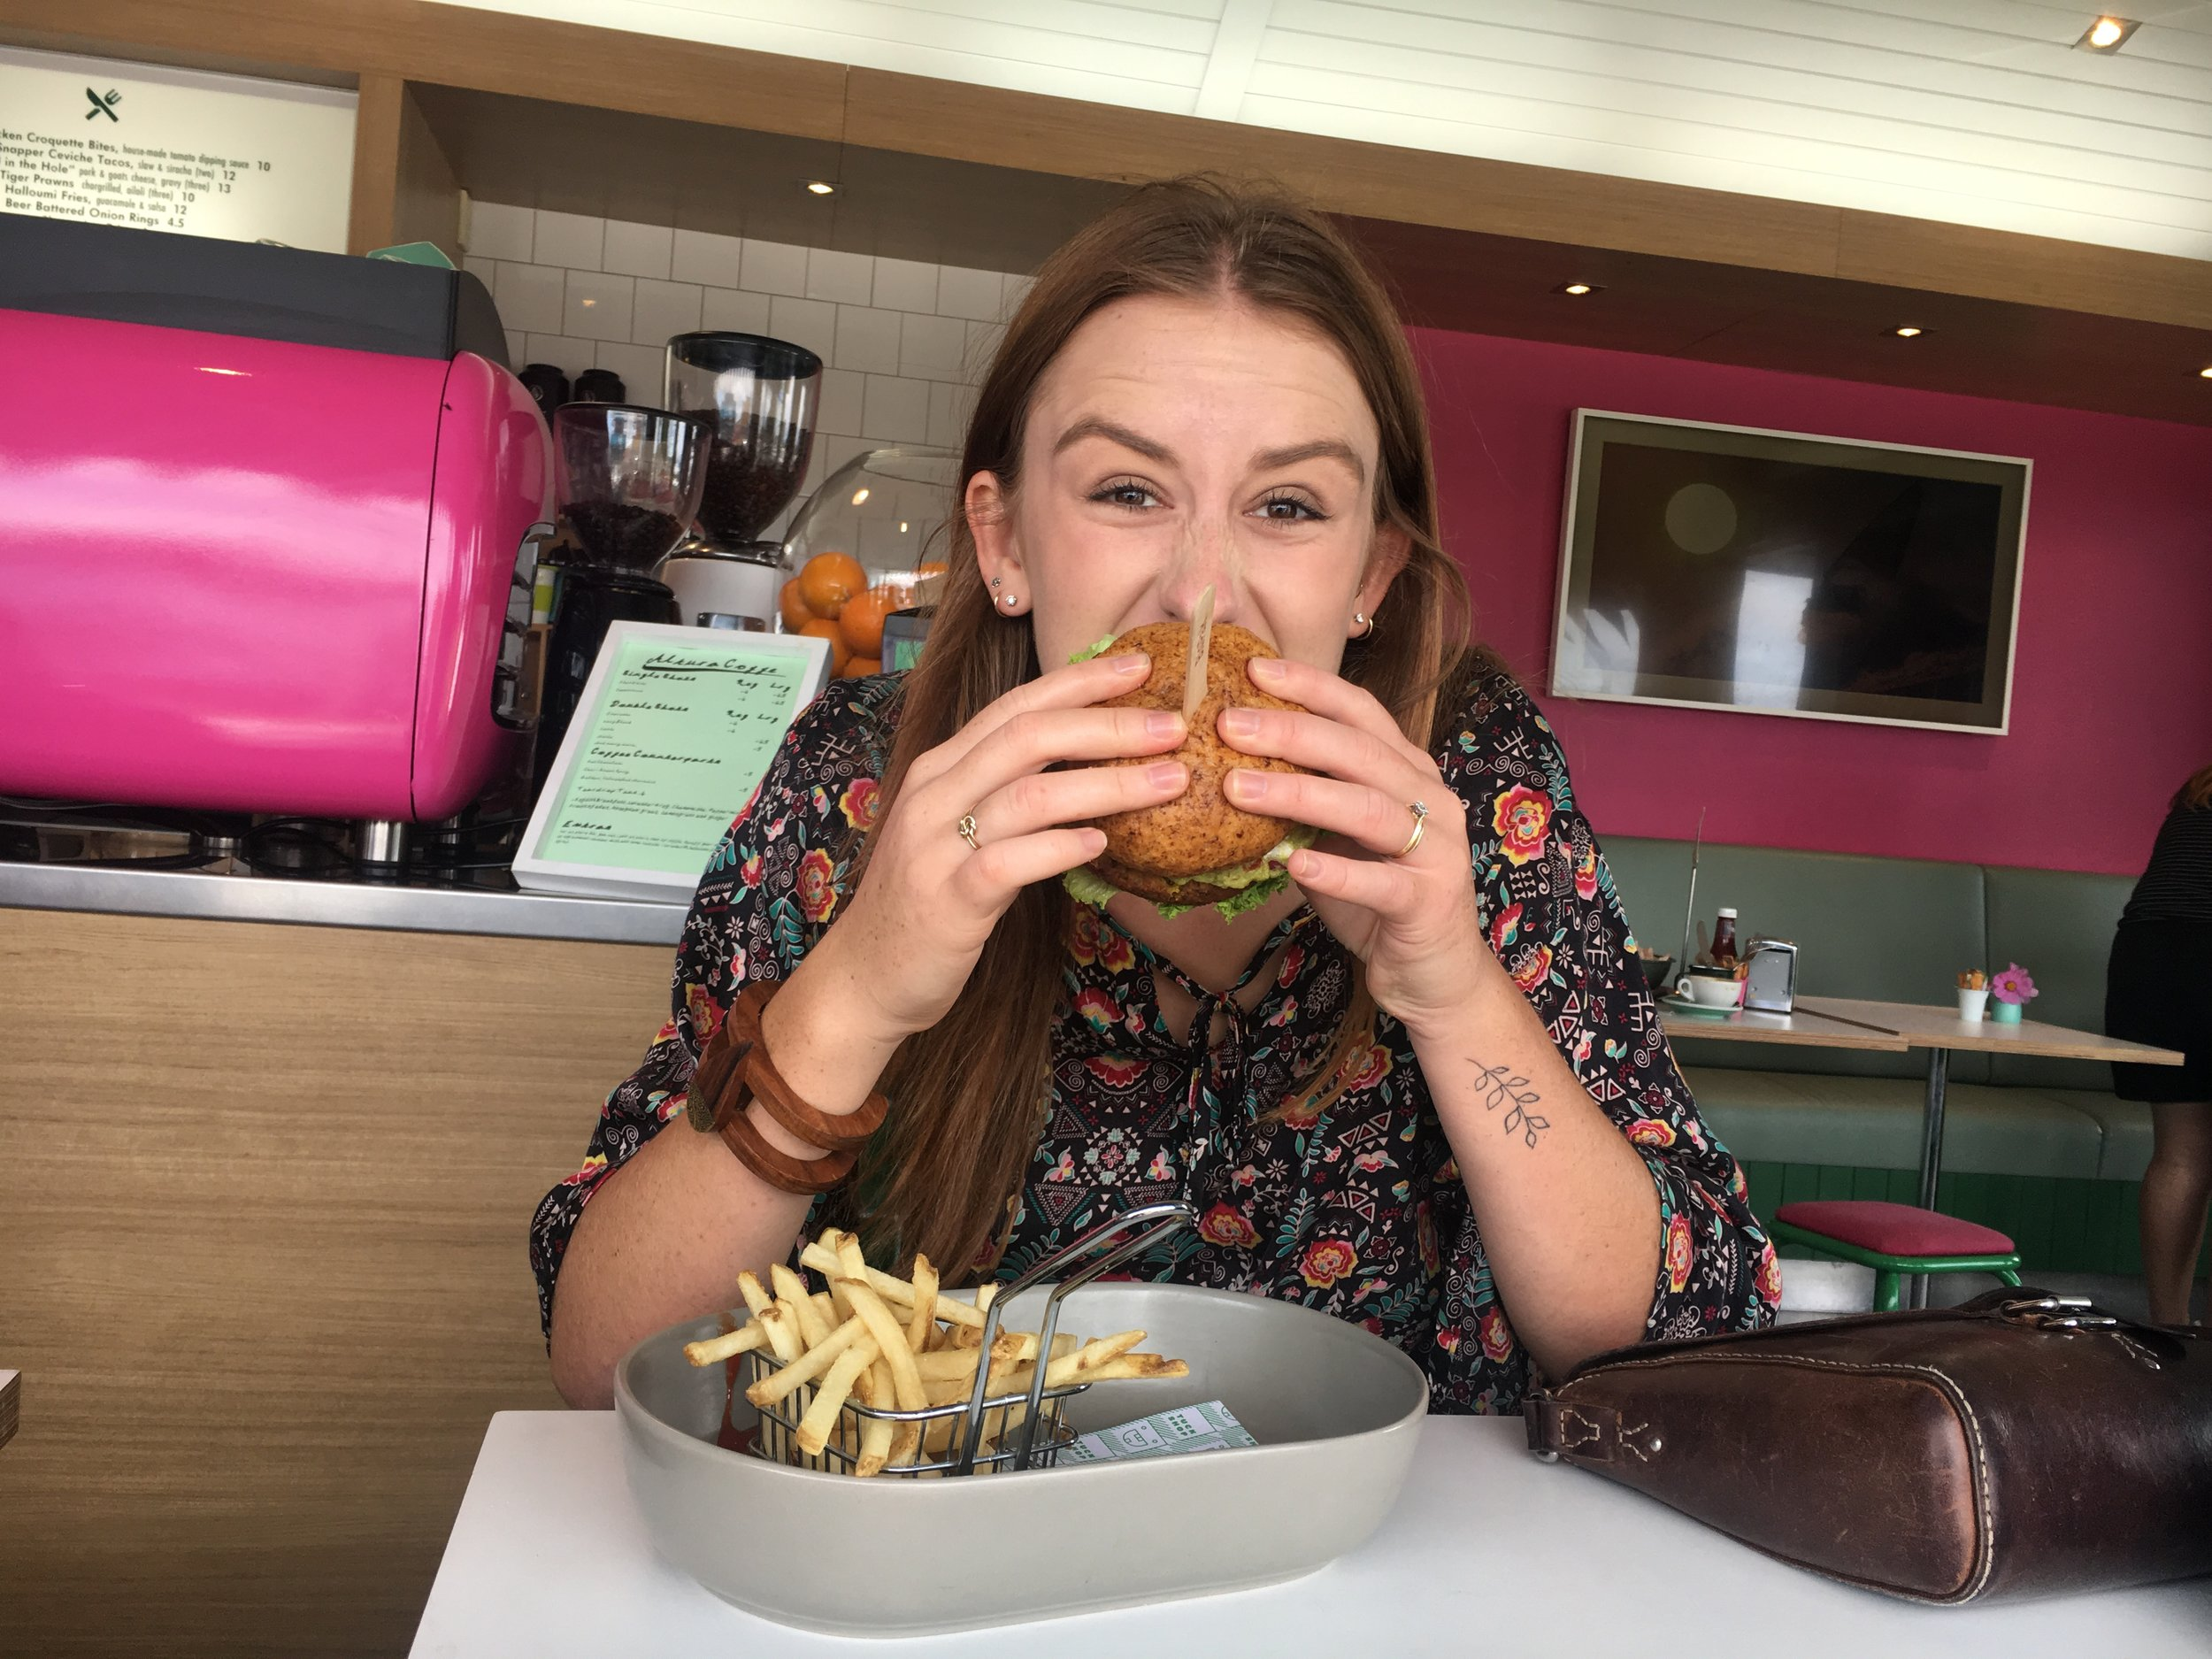 Munching on a gluten free vegetarian burger and fries